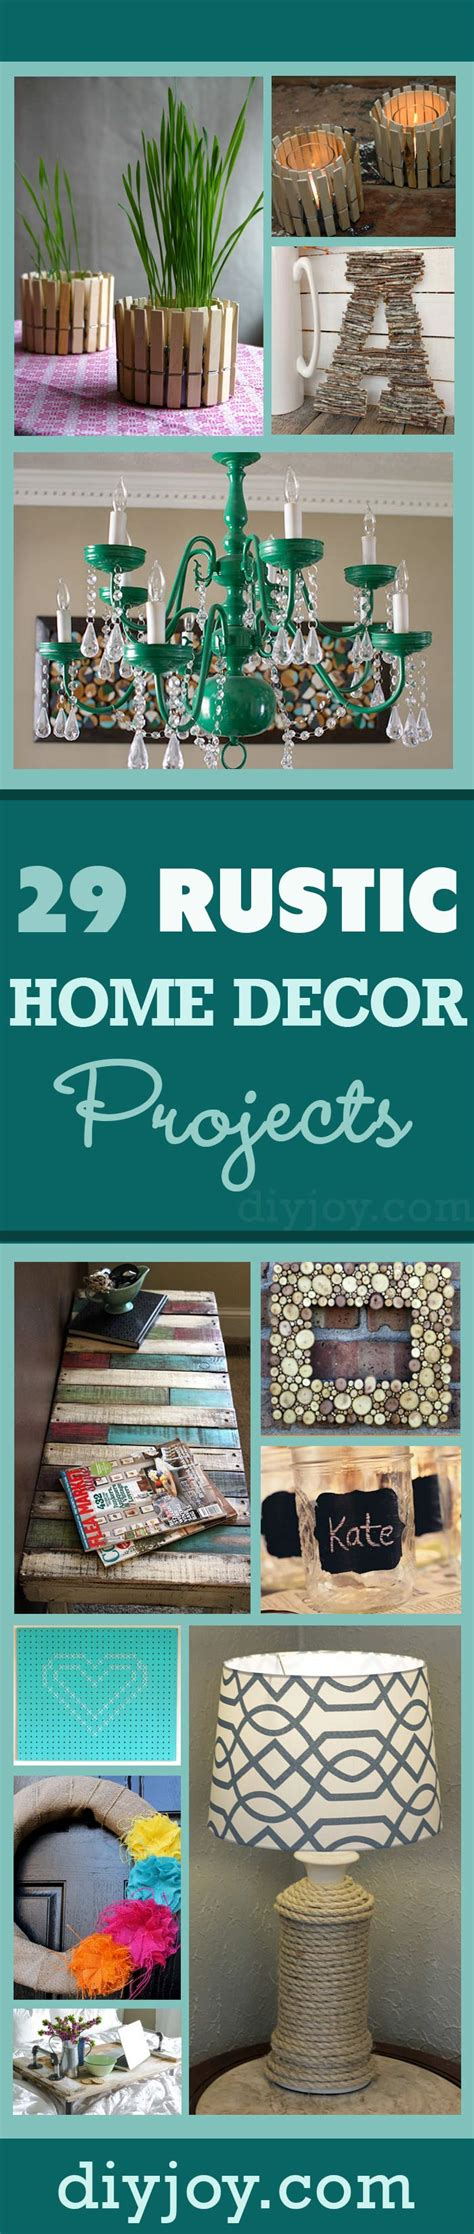 diy projects home decor 29 rustic diy home decor ideas